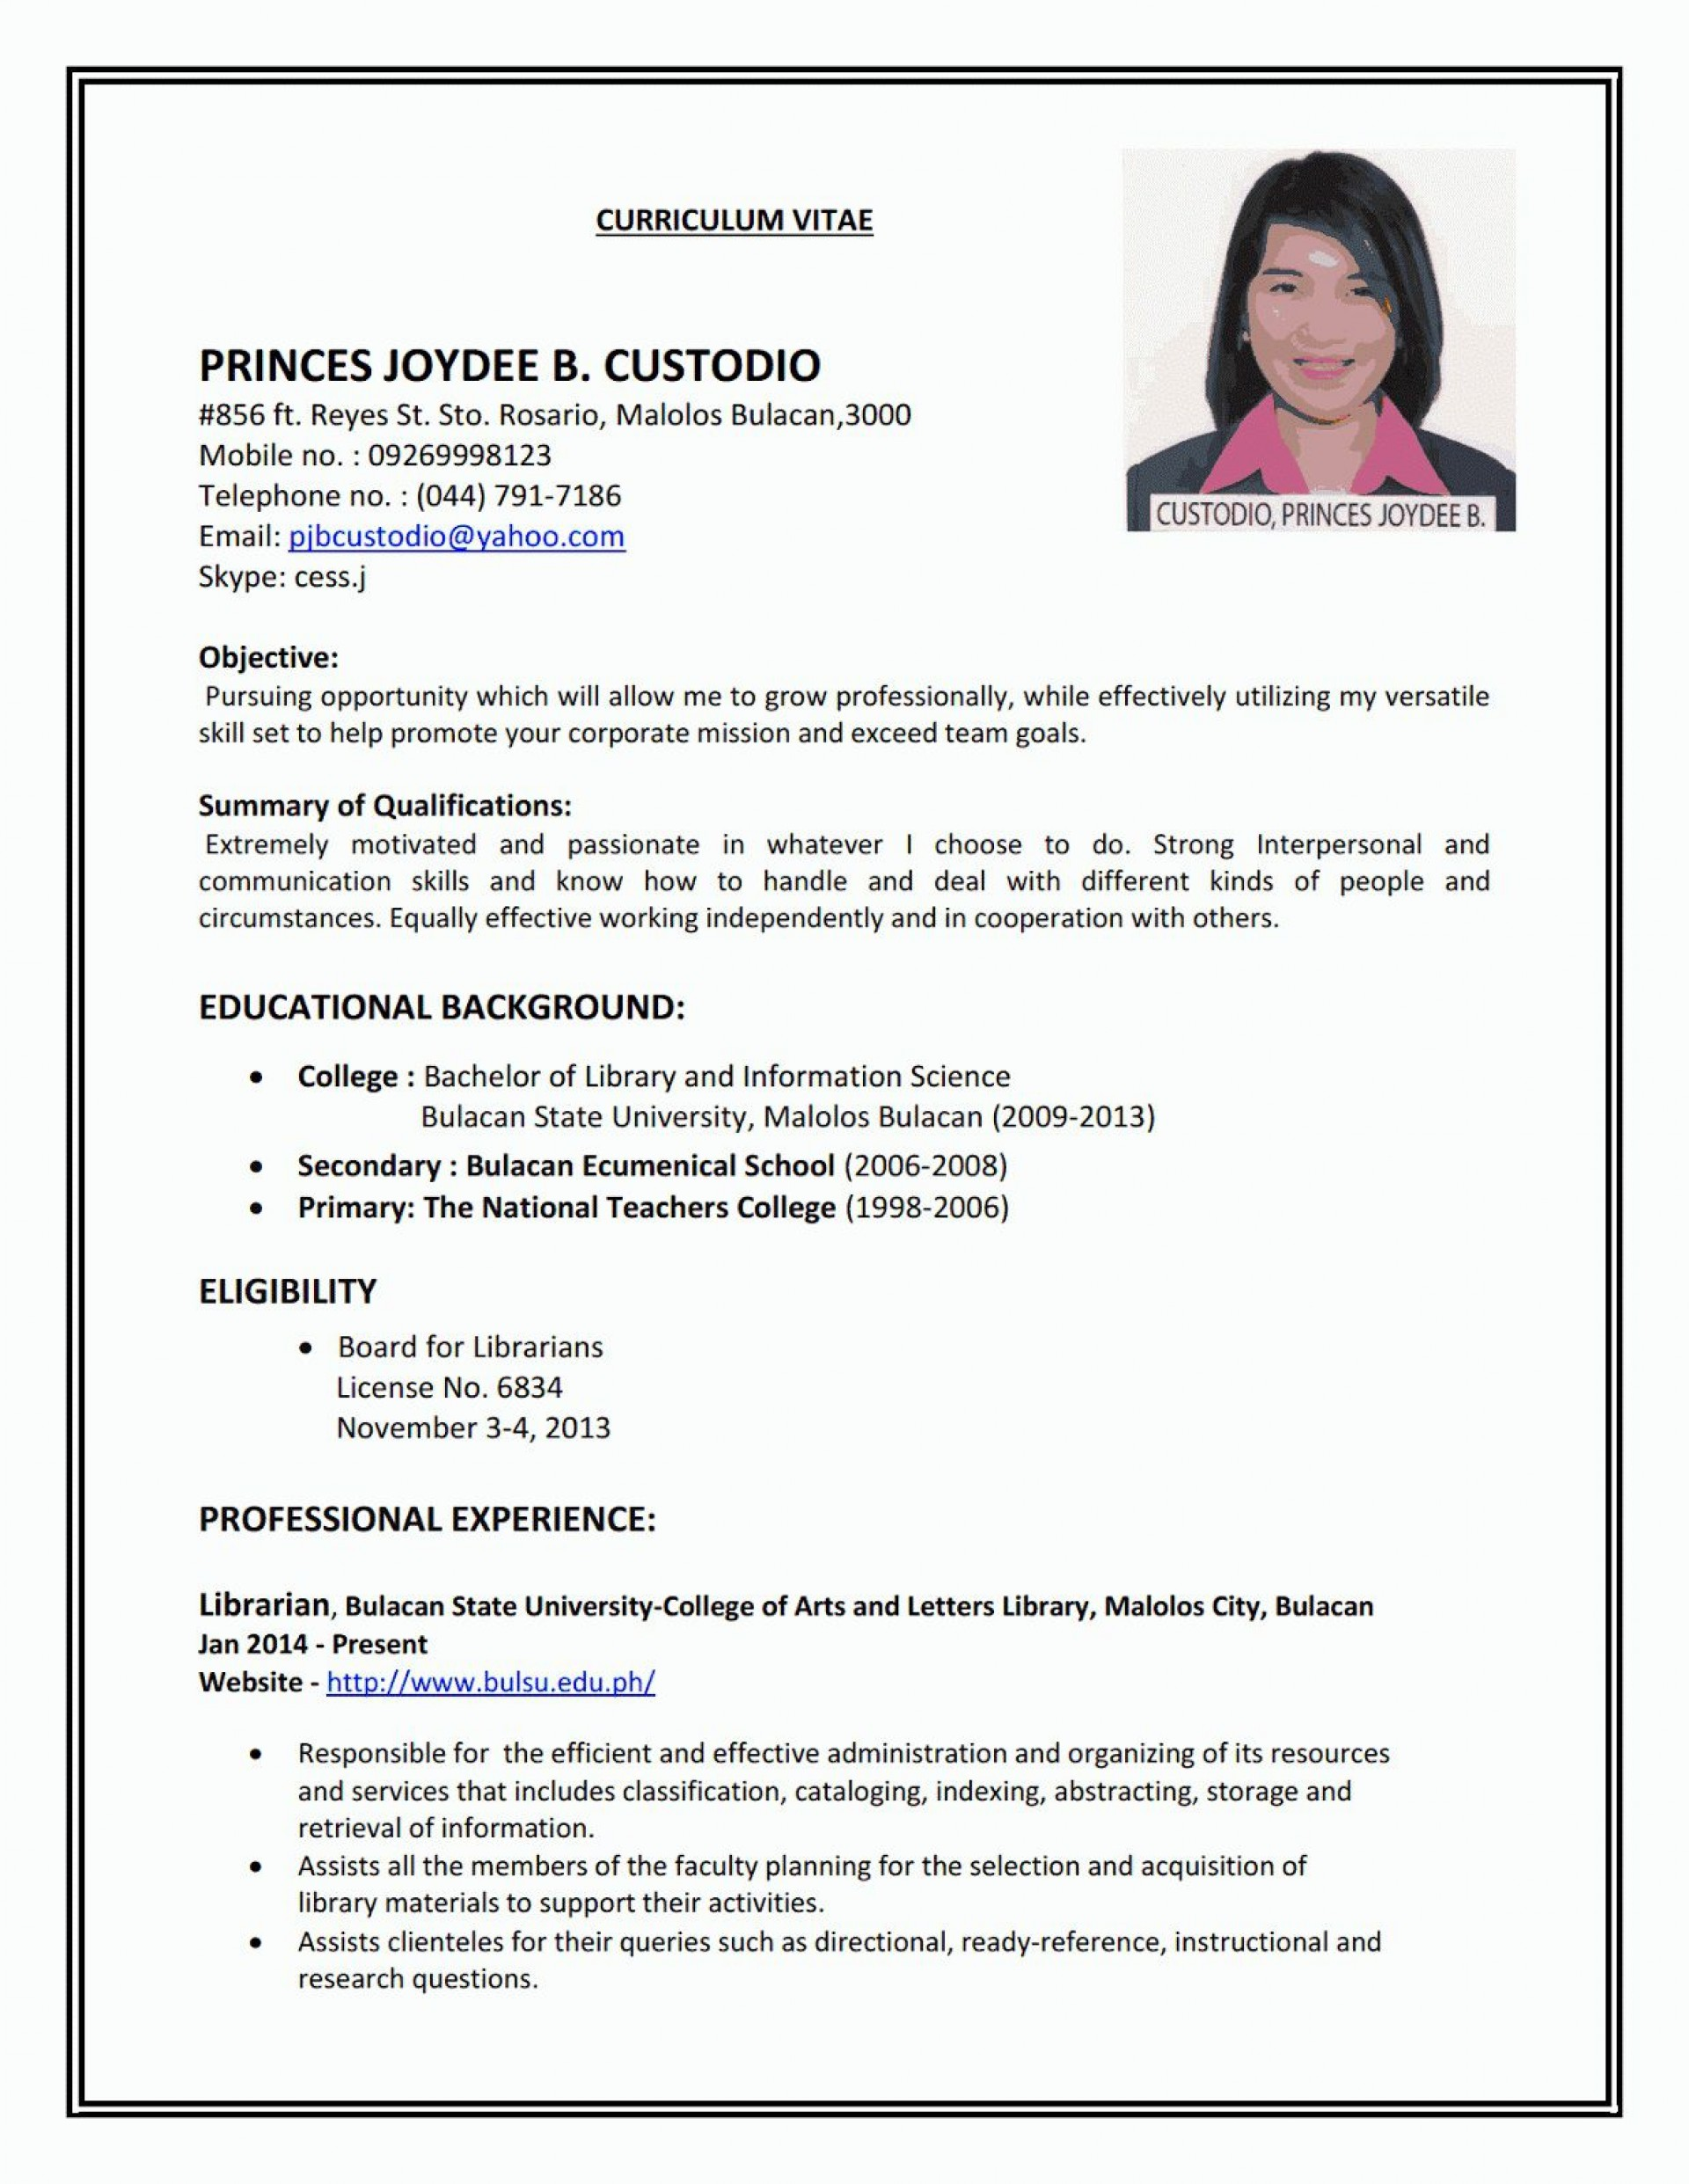 005 Imposing Resume Template For First Job Highest Quality  No Experience Student Cv Nz Format1920